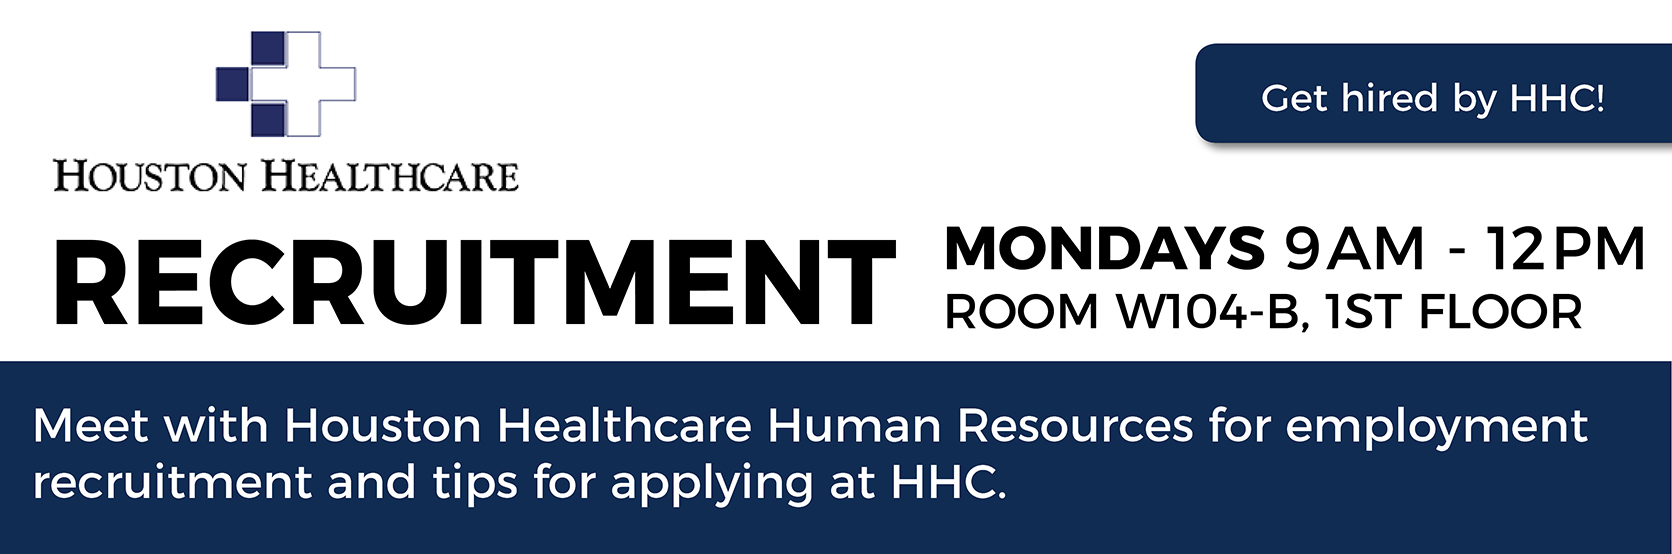 Houston Healthcare Recruitment: Mondays 9am-12pm Room W104-B, 1st Floor